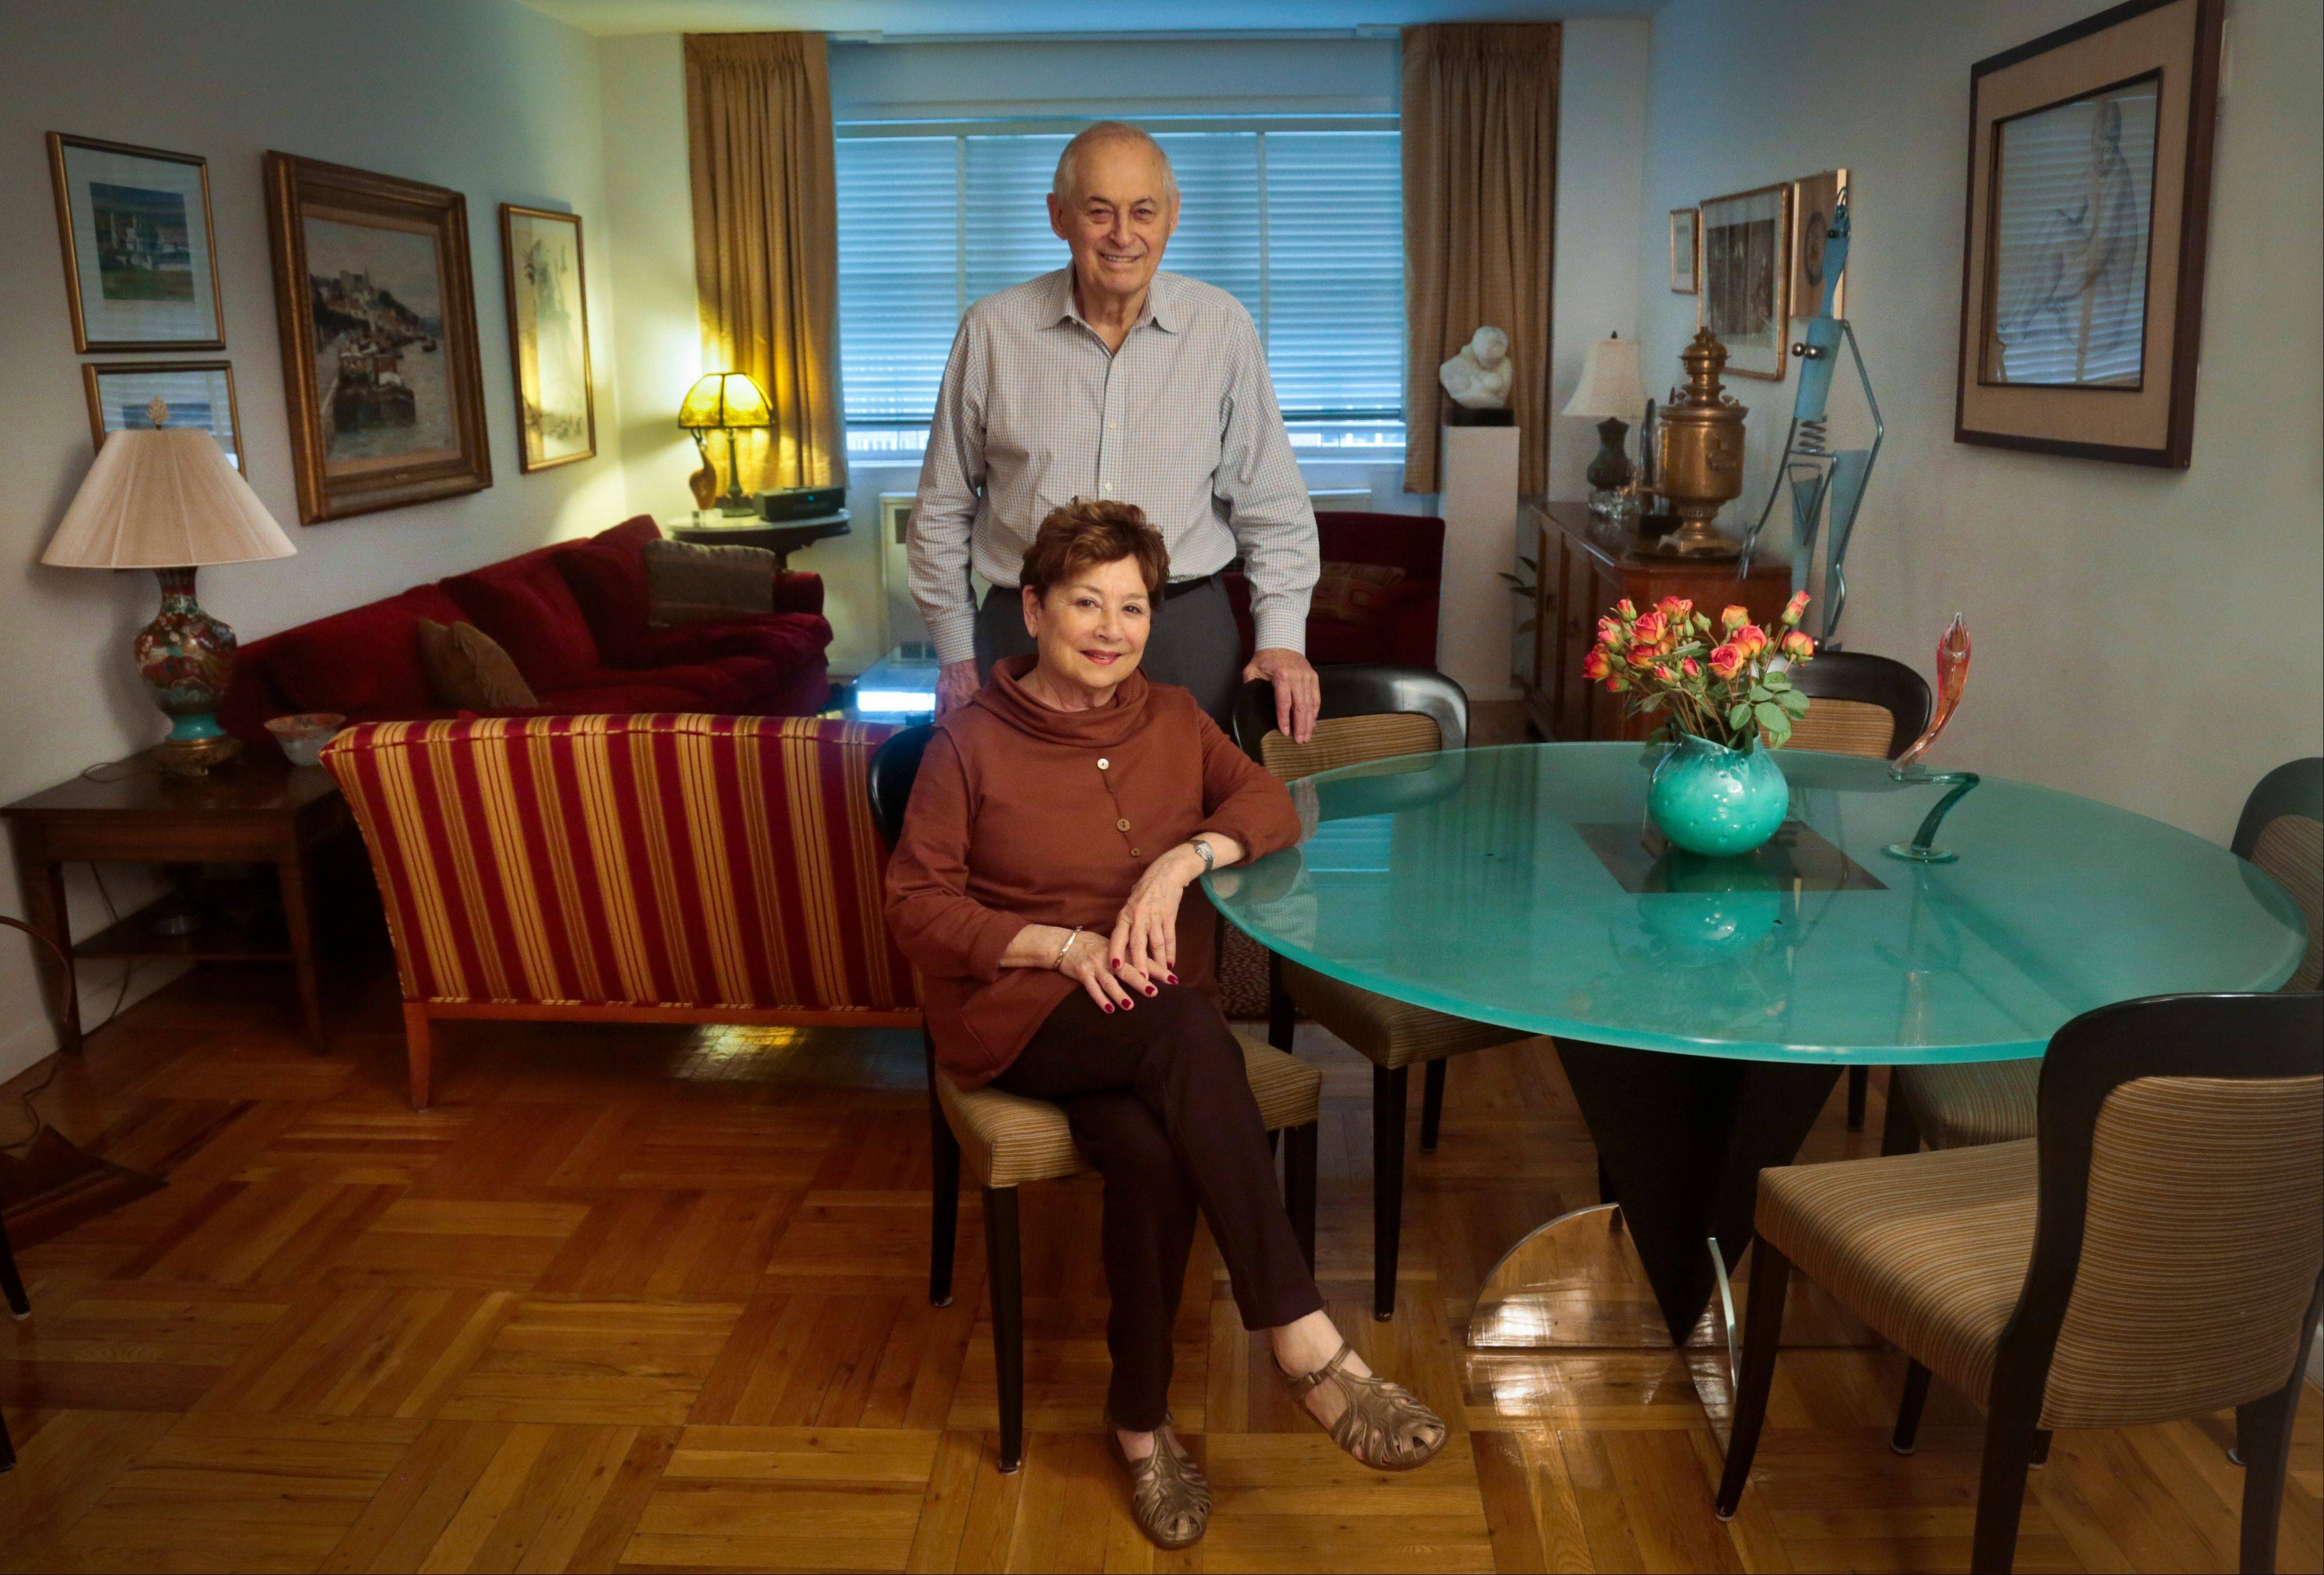 Victims of Bernie Madoff's massive Ponzi scheme, Morton Chalek, 91, standing, a WWII vet, and his friend Fran Reiss, 79, a retired educator, pose in the apartment they share. With the fifth anniversary of Madoff's fraud approaching, Chalek and Reiss are among a legion of former investors still struggling to move on after seeing their life savings go up in flames.